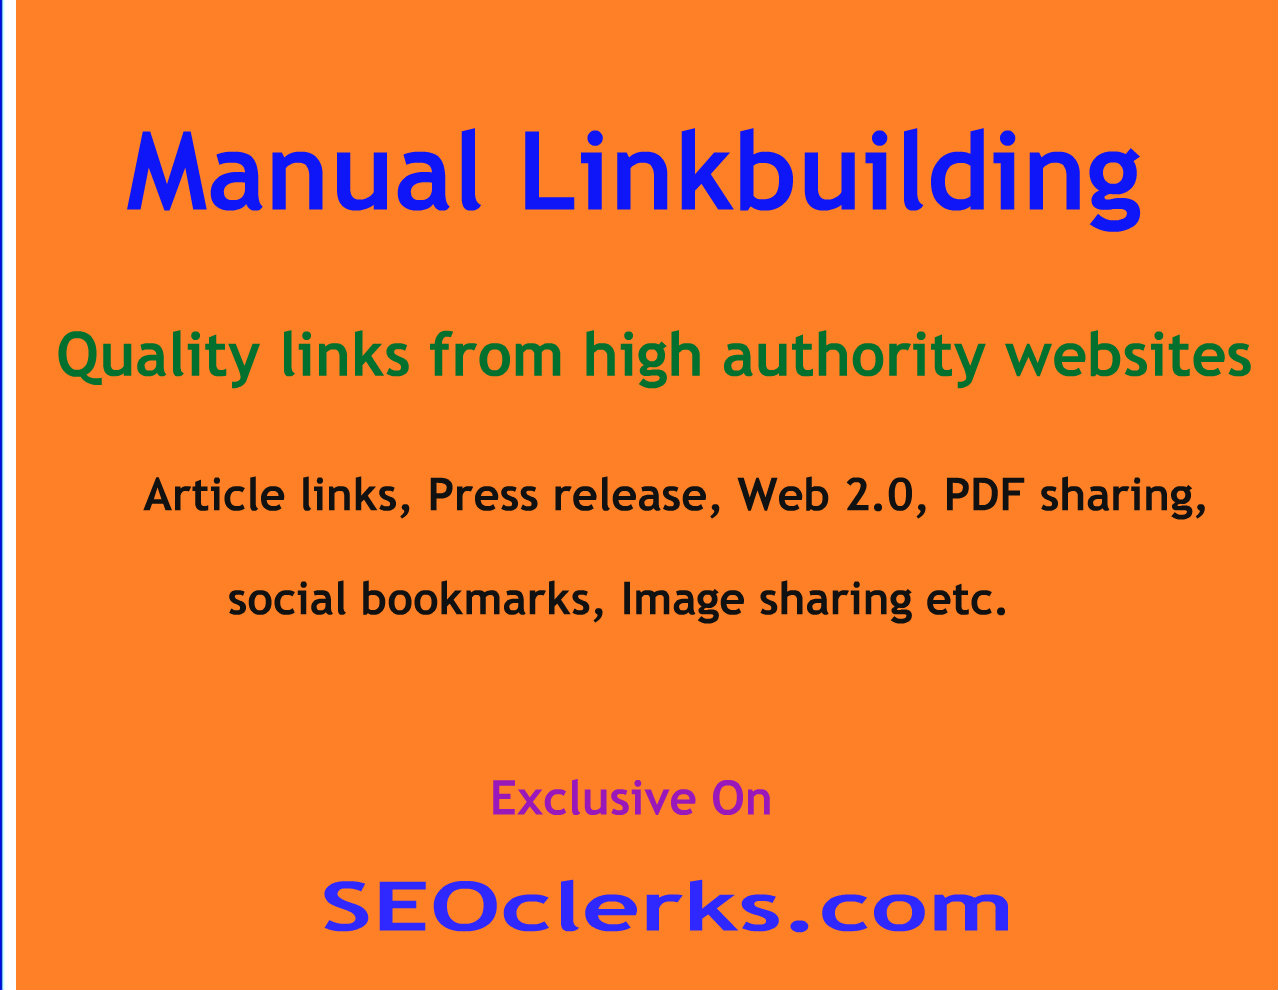 Manual linkbuilding for your website